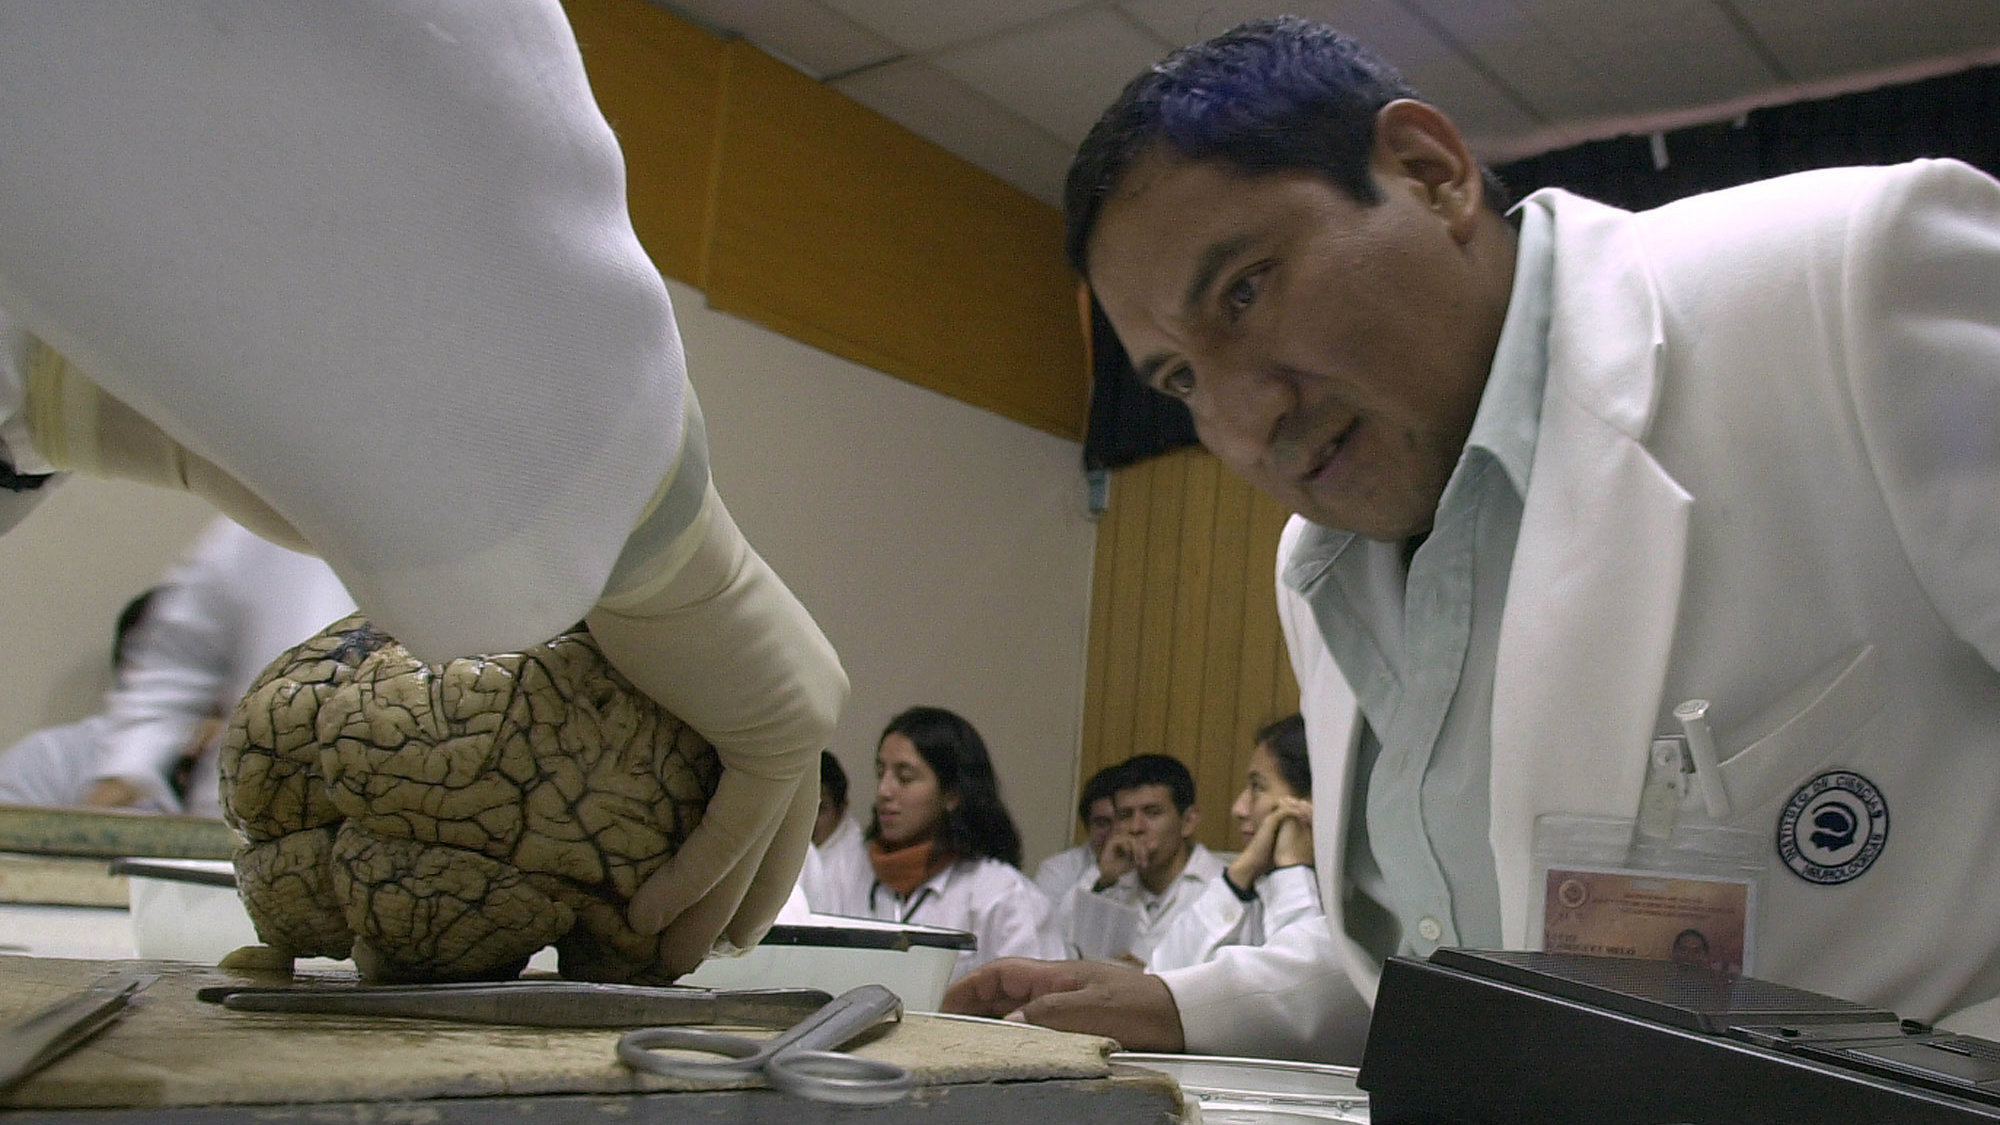 A medical student watches as a professor dissects a human brain at the Neurological Sciences Institute's brain museum in Lima, Peru, July 4, 2002.